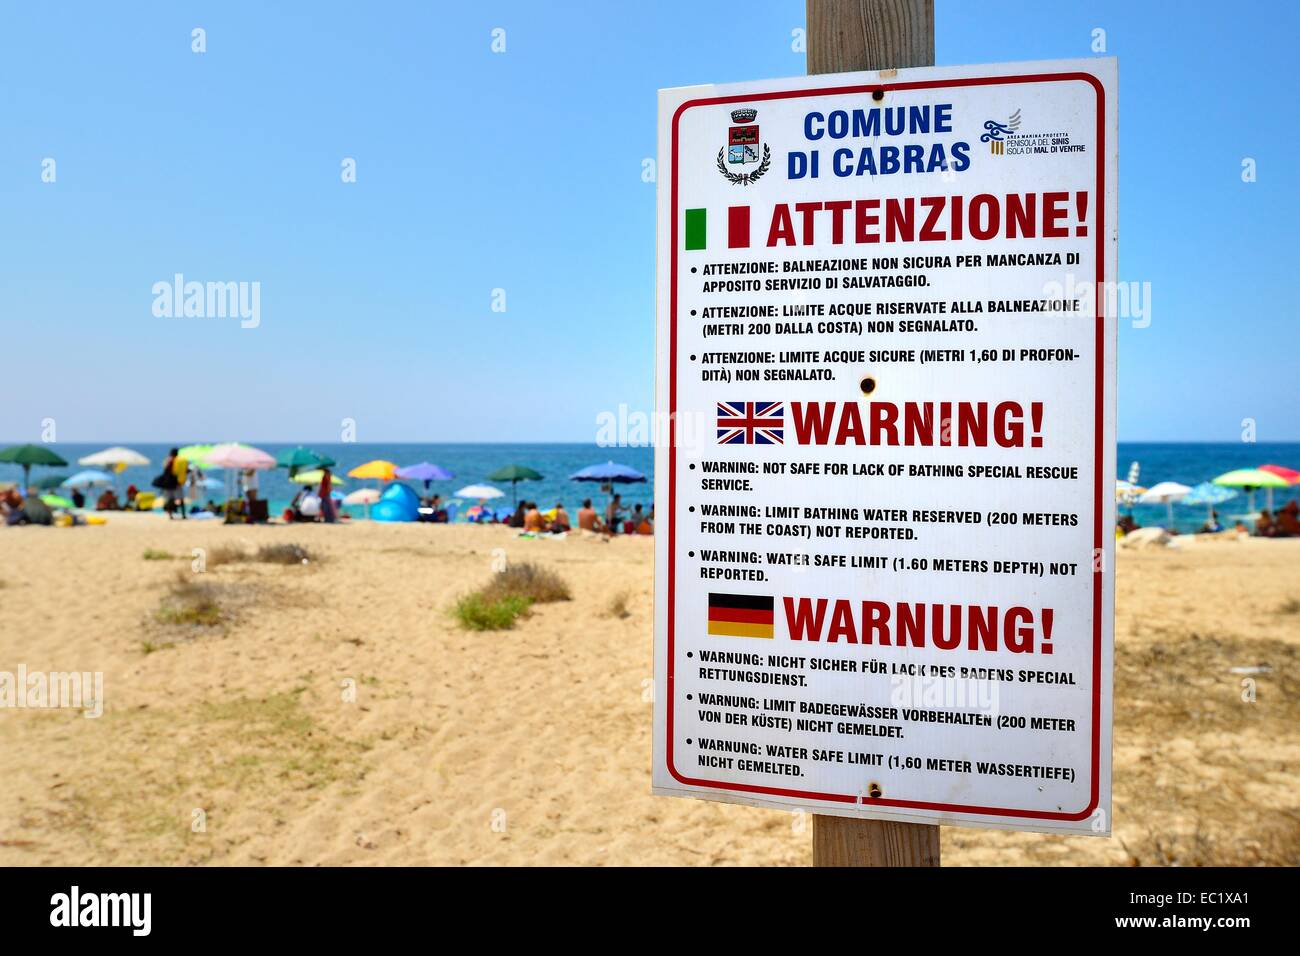 Funny German translation on a warning sign on the beach, Sinis peninsula, Sardinia, Italy, Europe - Stock Image